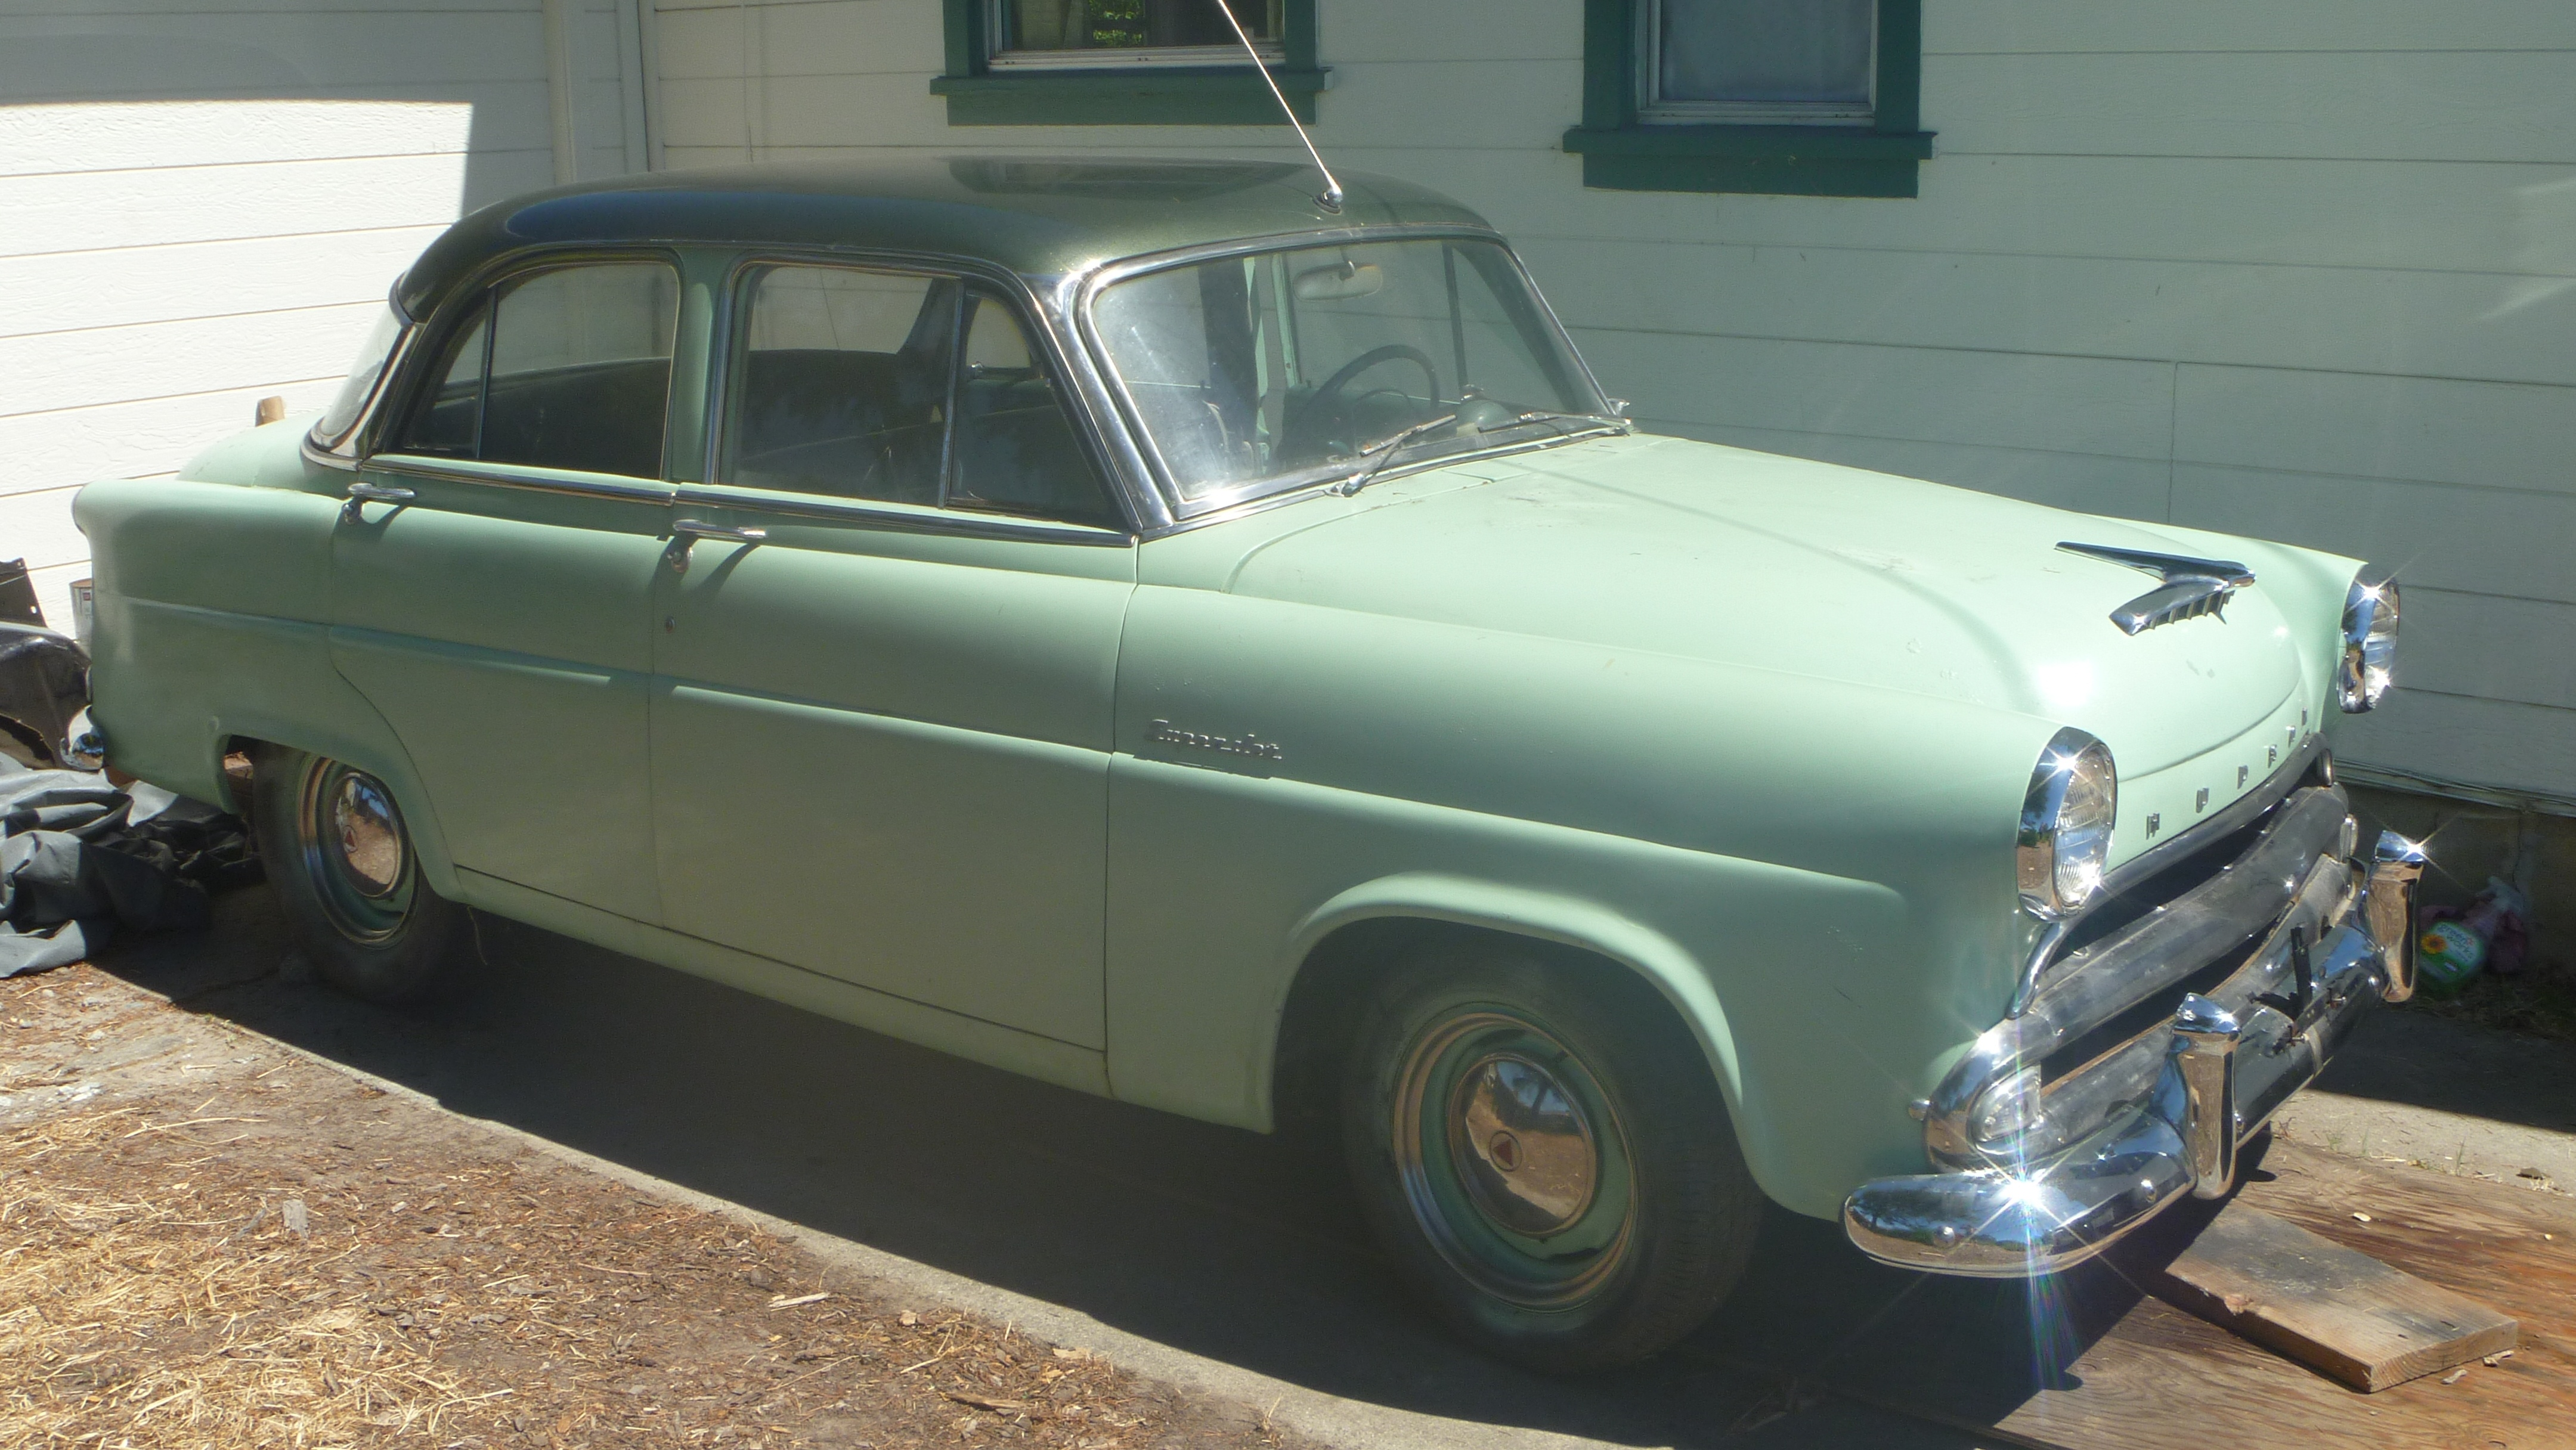 Looking for a Hydra-Matic Transmission for a 1953 Super Jet — Hudson